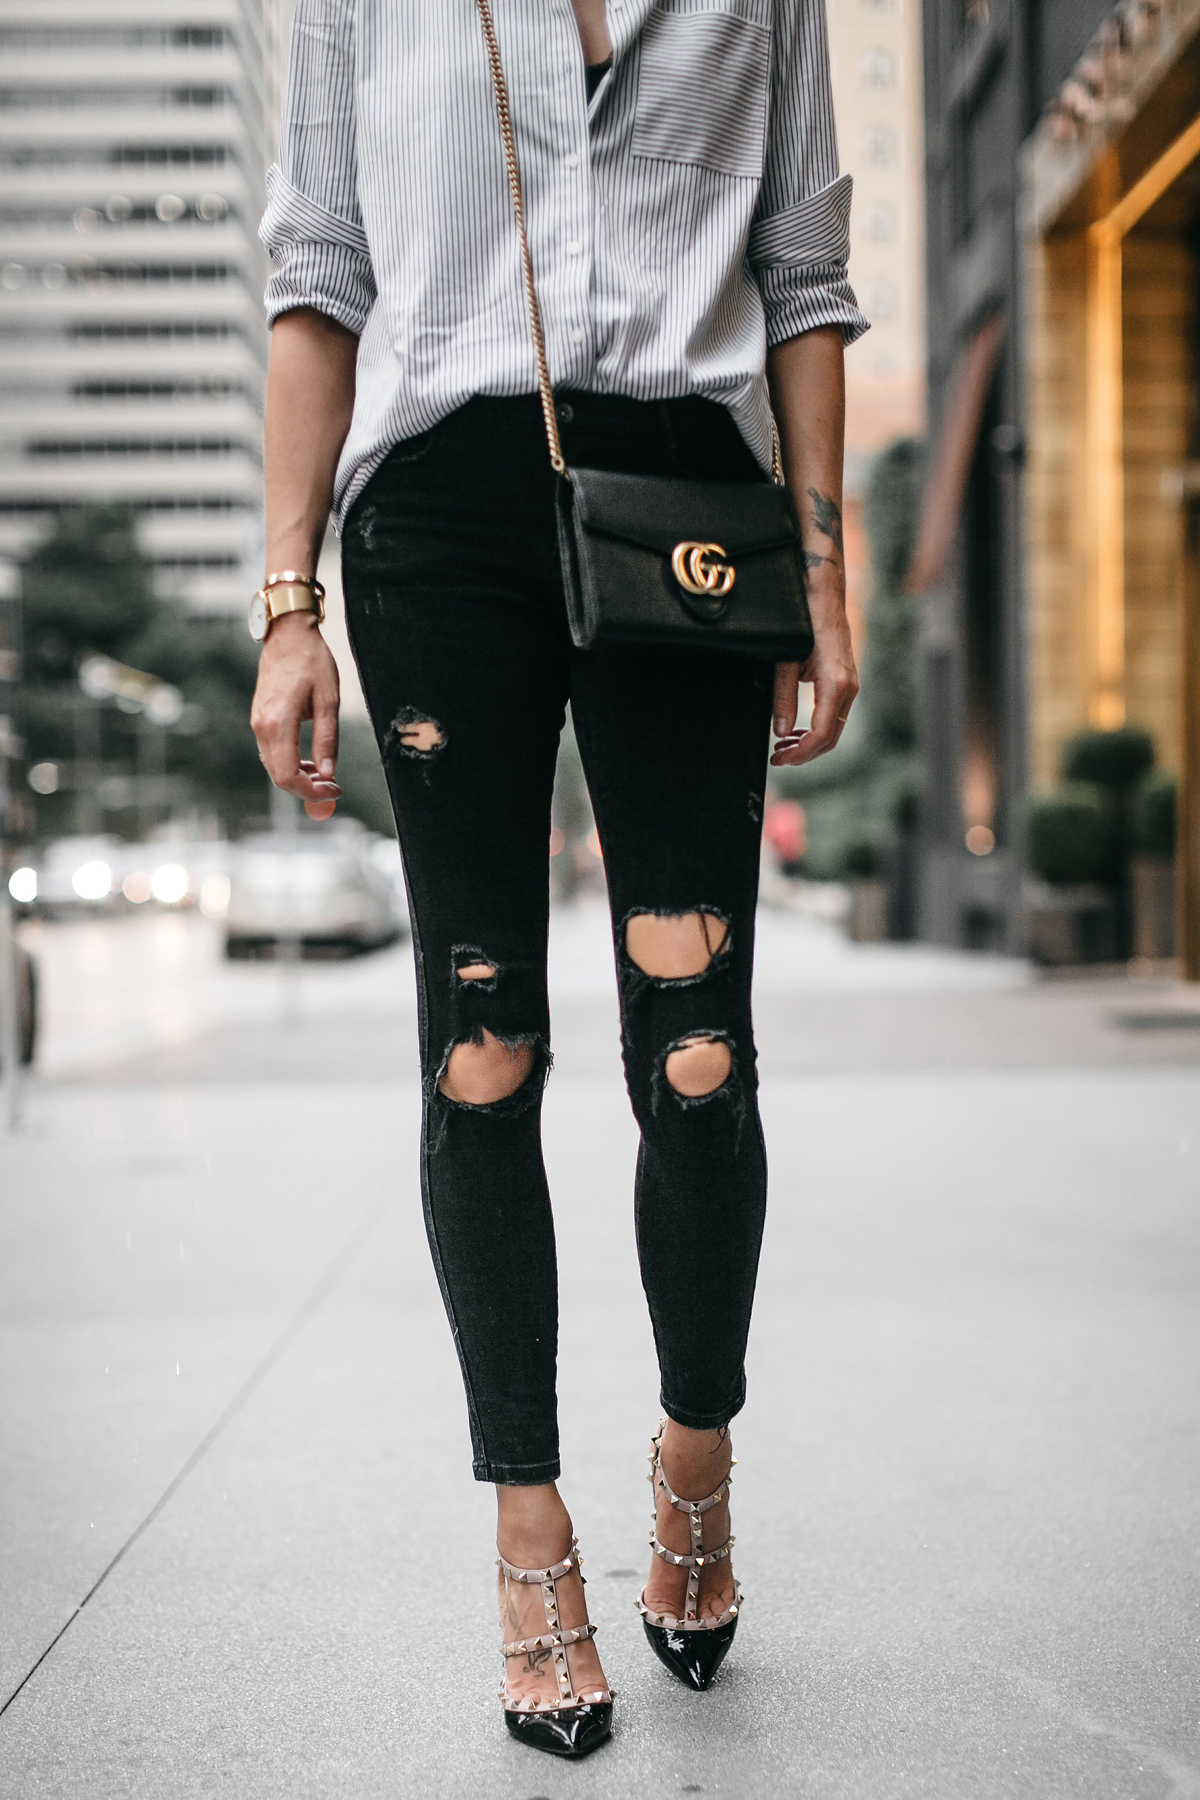 Striped Button Down Shirt Zara Black Ripped Skinny Jeans Valentino Rockstud Pumps Gucci Handbag Fashion Jackson Dallas Blogger Fashion Blogger Street Style